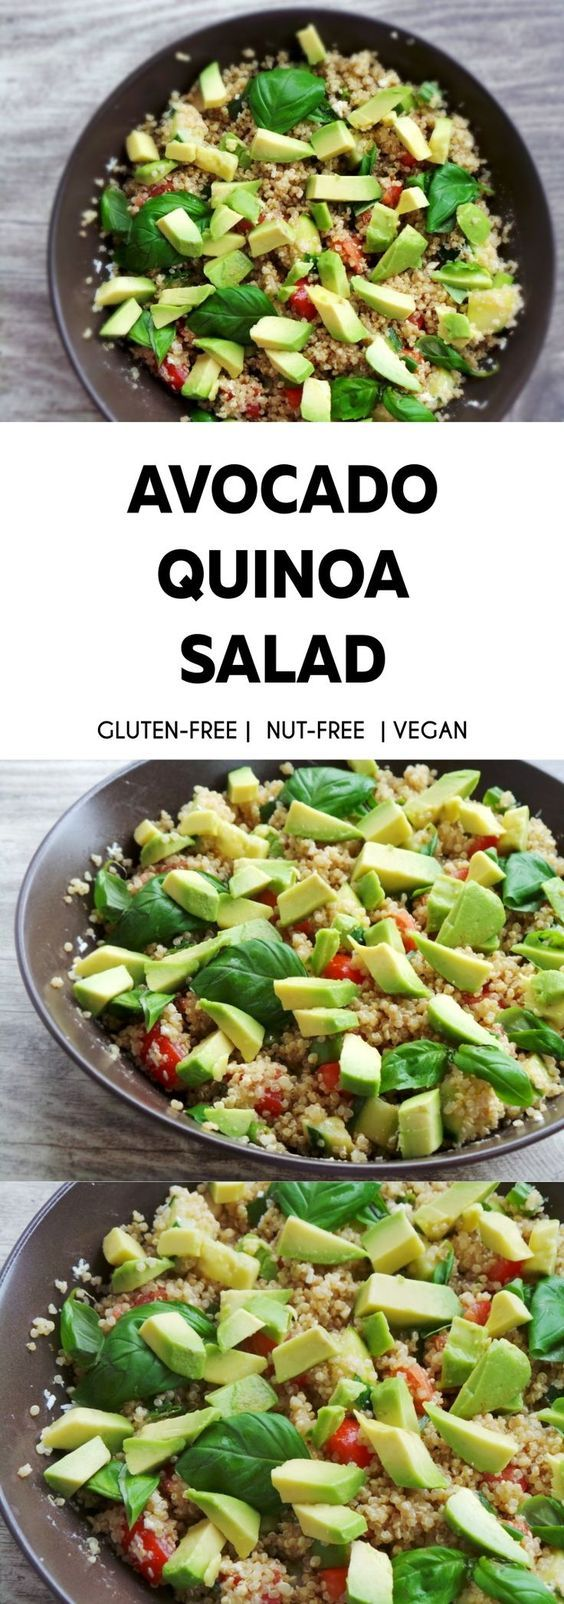 Vegan - Mug -   19 best quinoa recipes